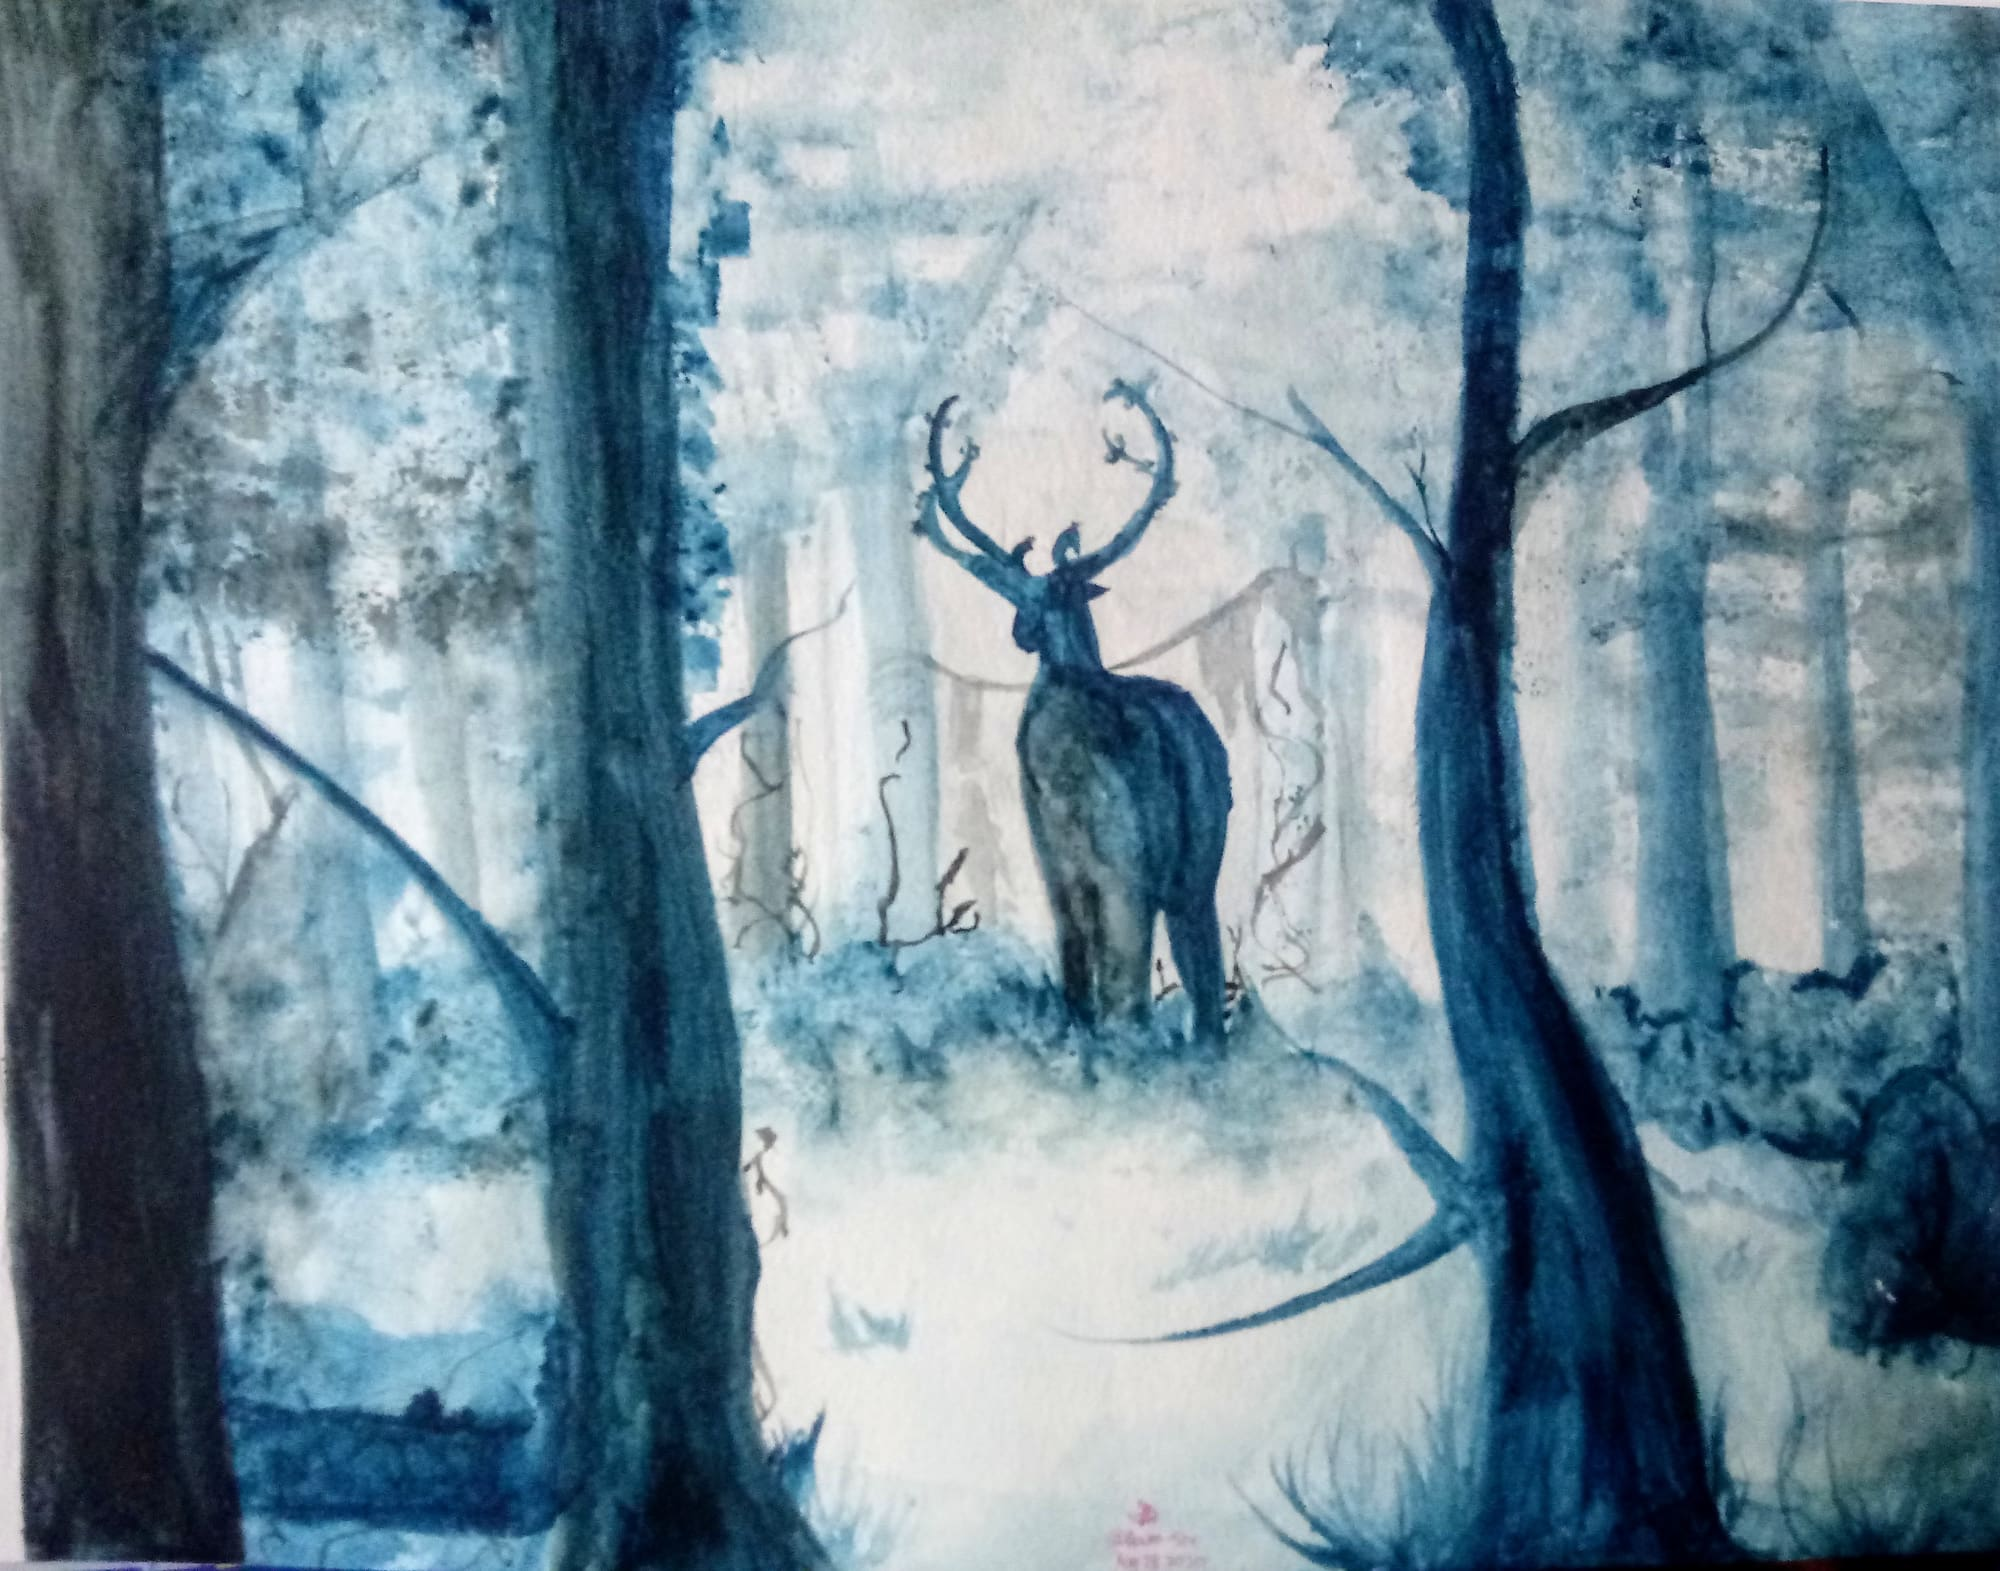 Water color of a deer in a forest in blues and shades of blue, work by Cherysh White